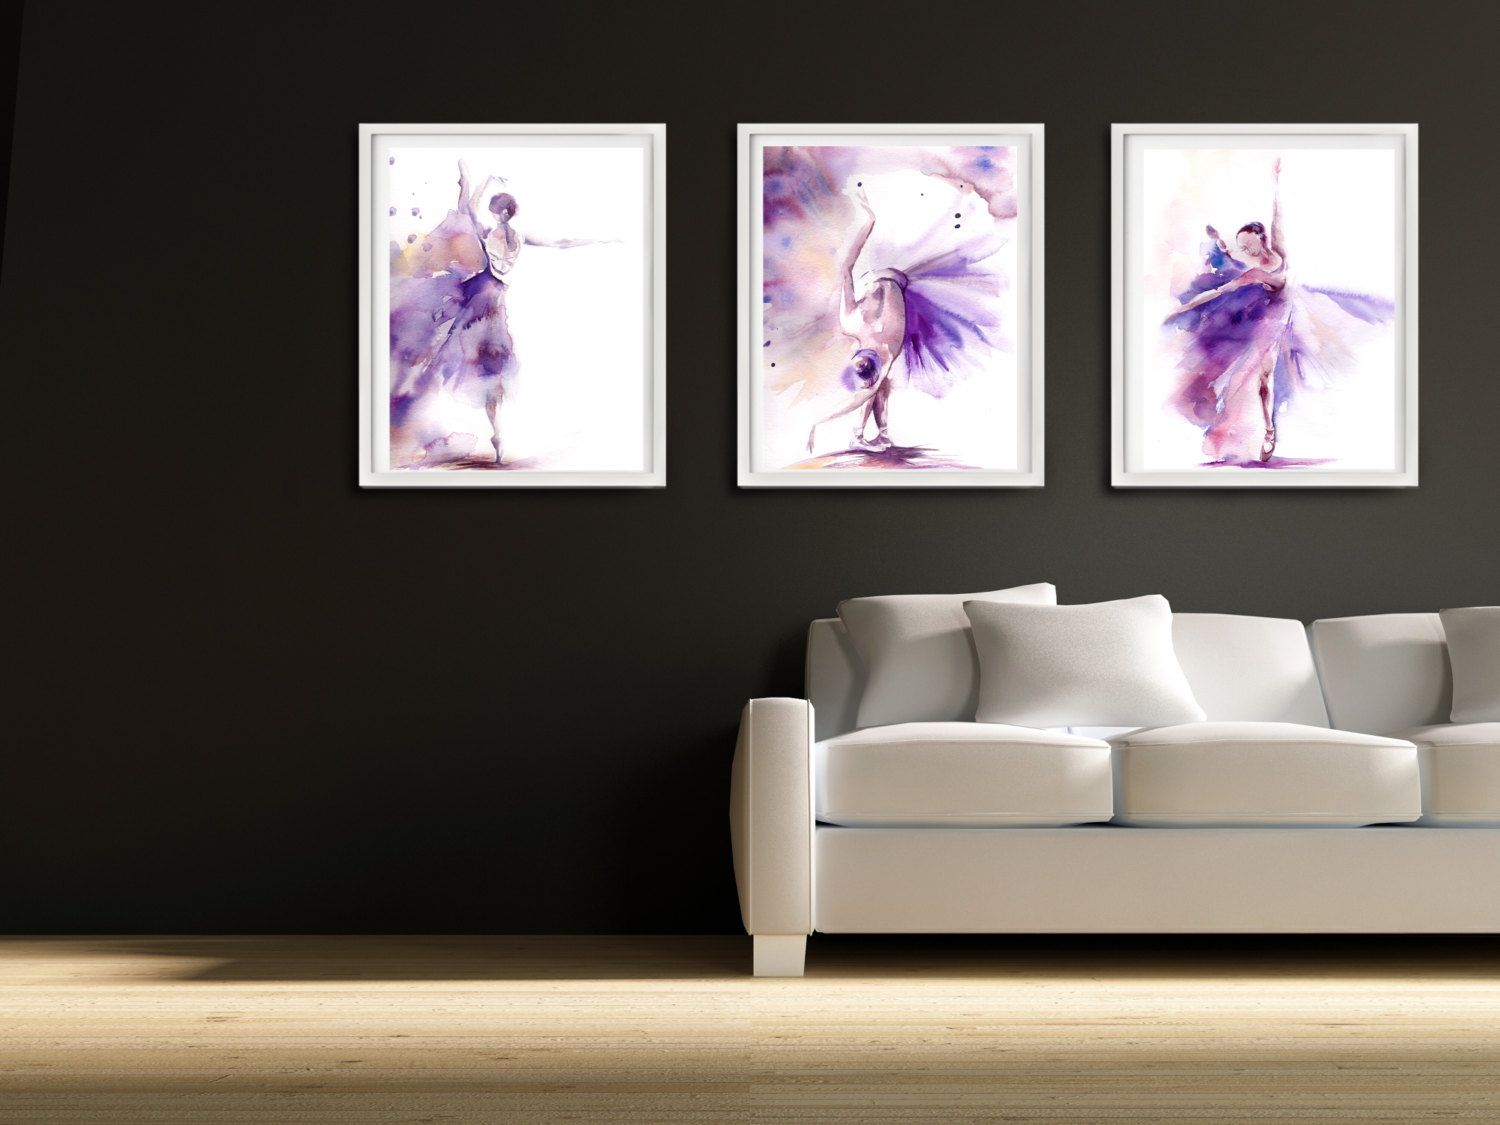 best dance art images on pinterest  dance art watercolors and  - ballet prints set of  ballerina wall art prints watercolor painting ofballerina purple art home decor